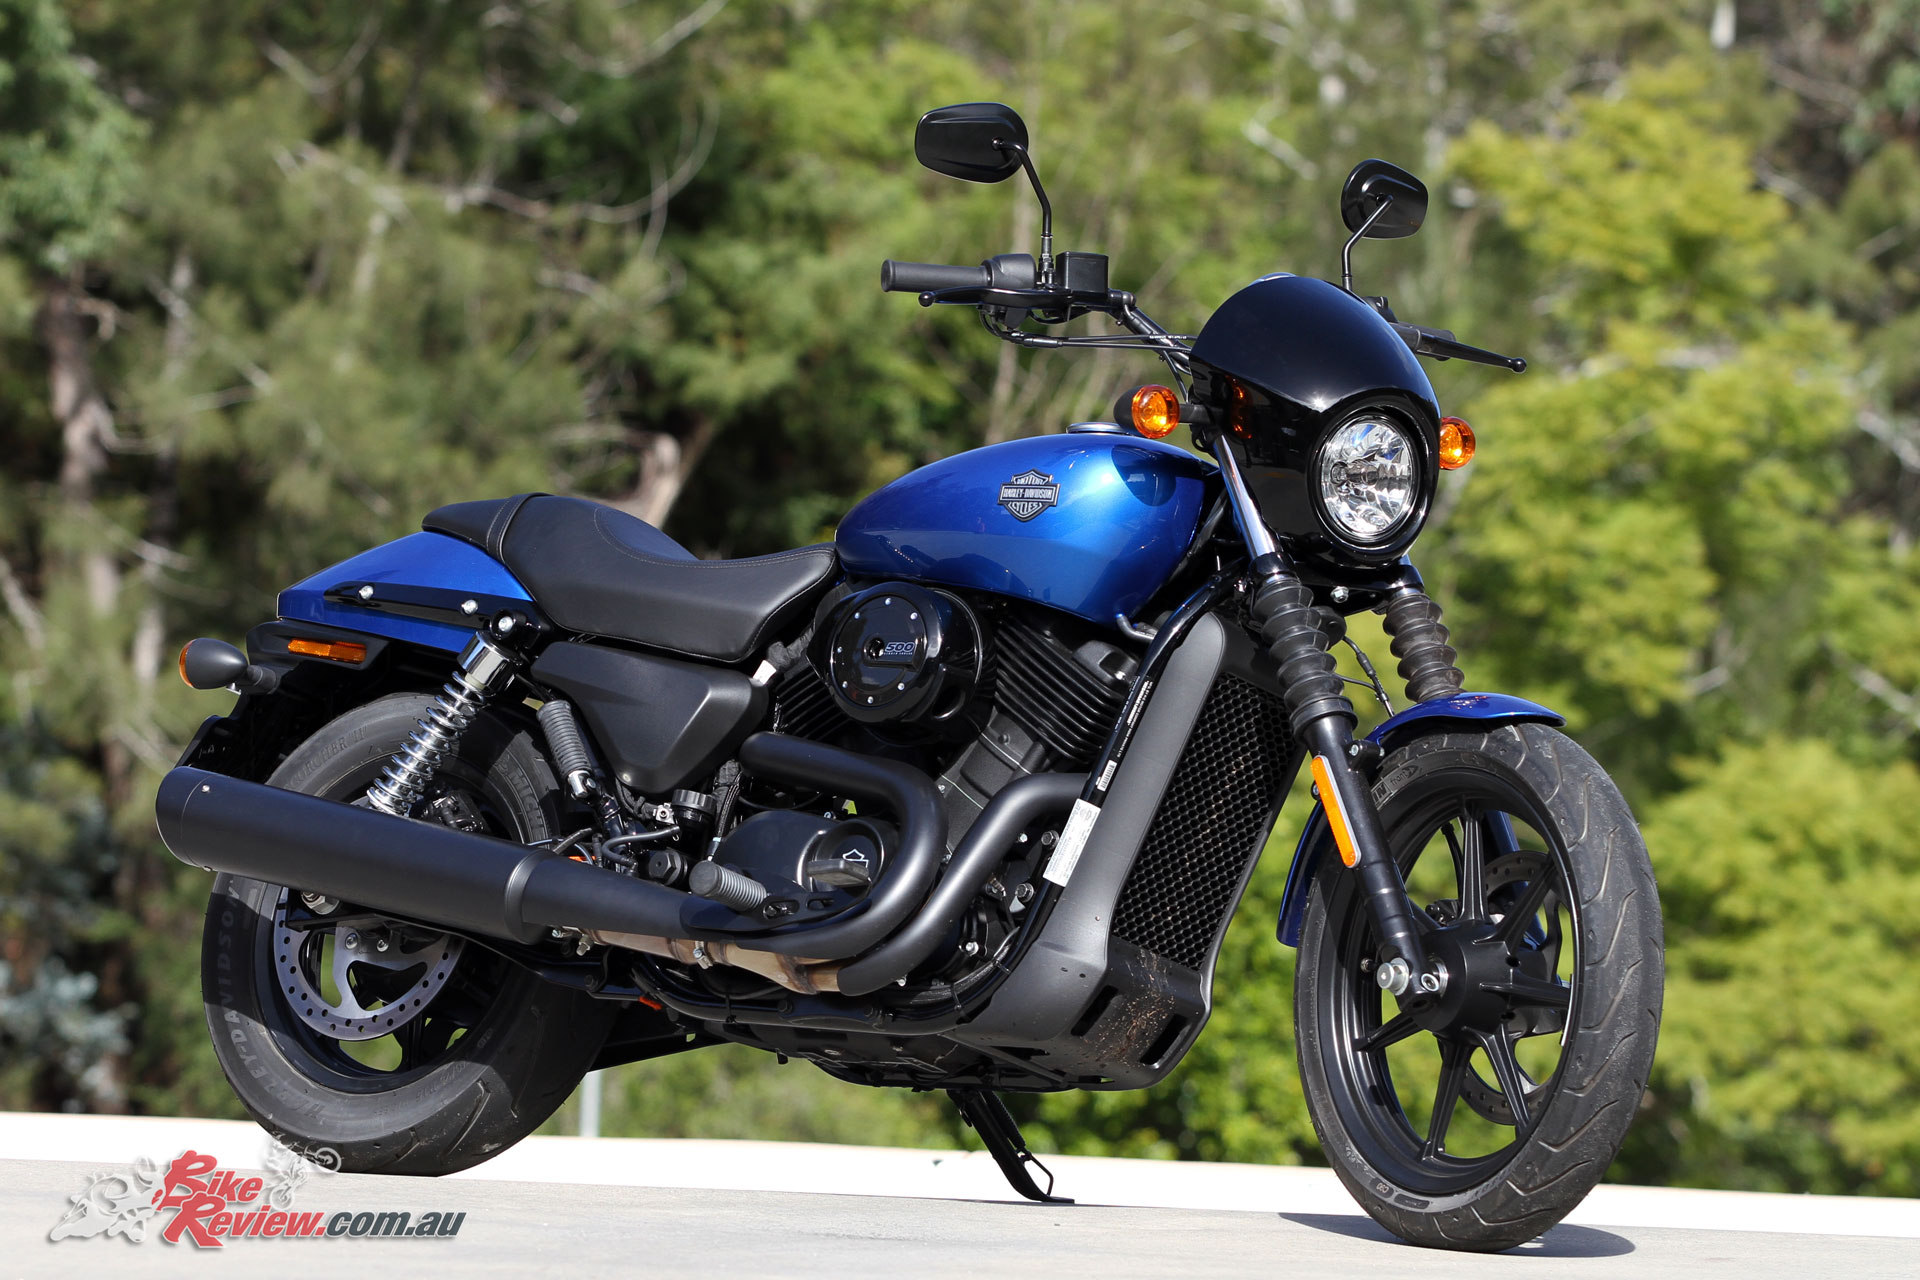 Harley-Davidson's Street 500 in Electric Blue